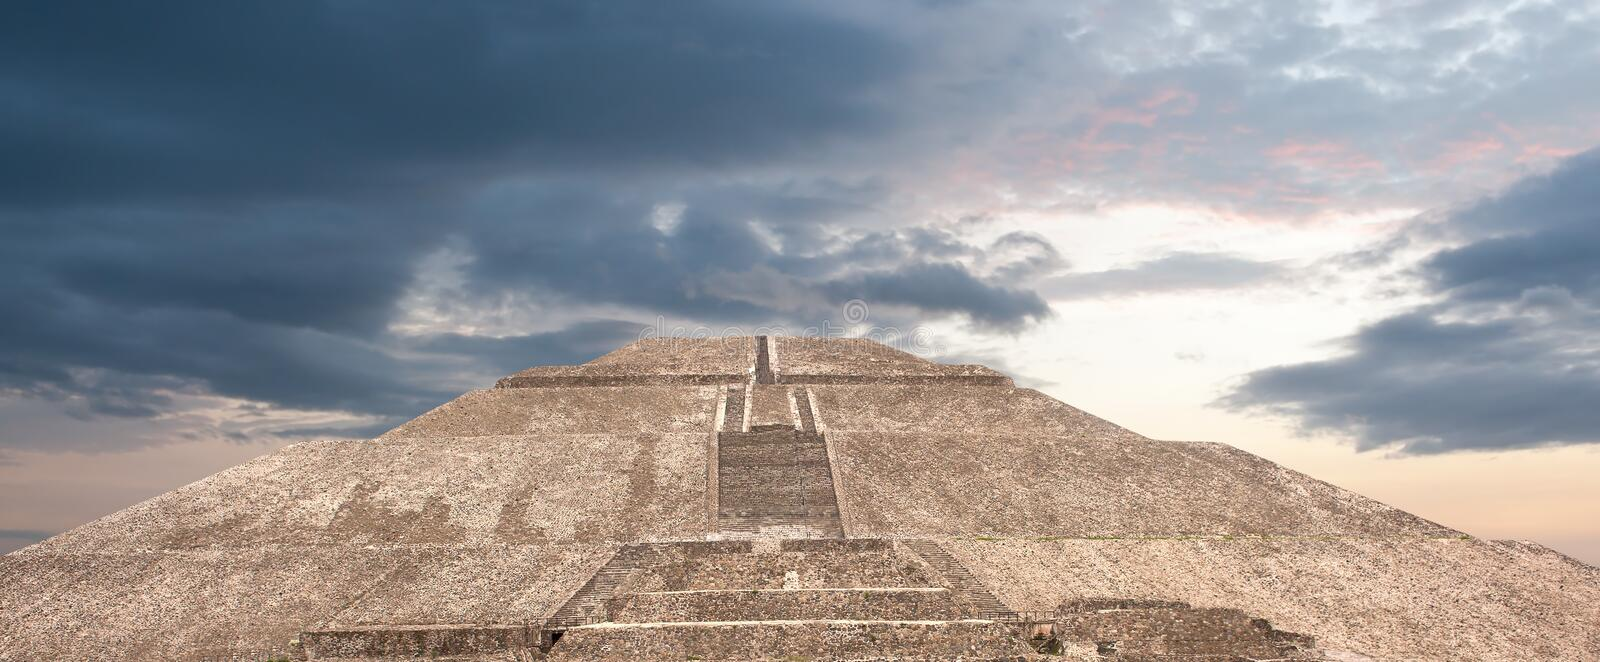 Teotihuacan pyramid of the sun. Mexico stock image